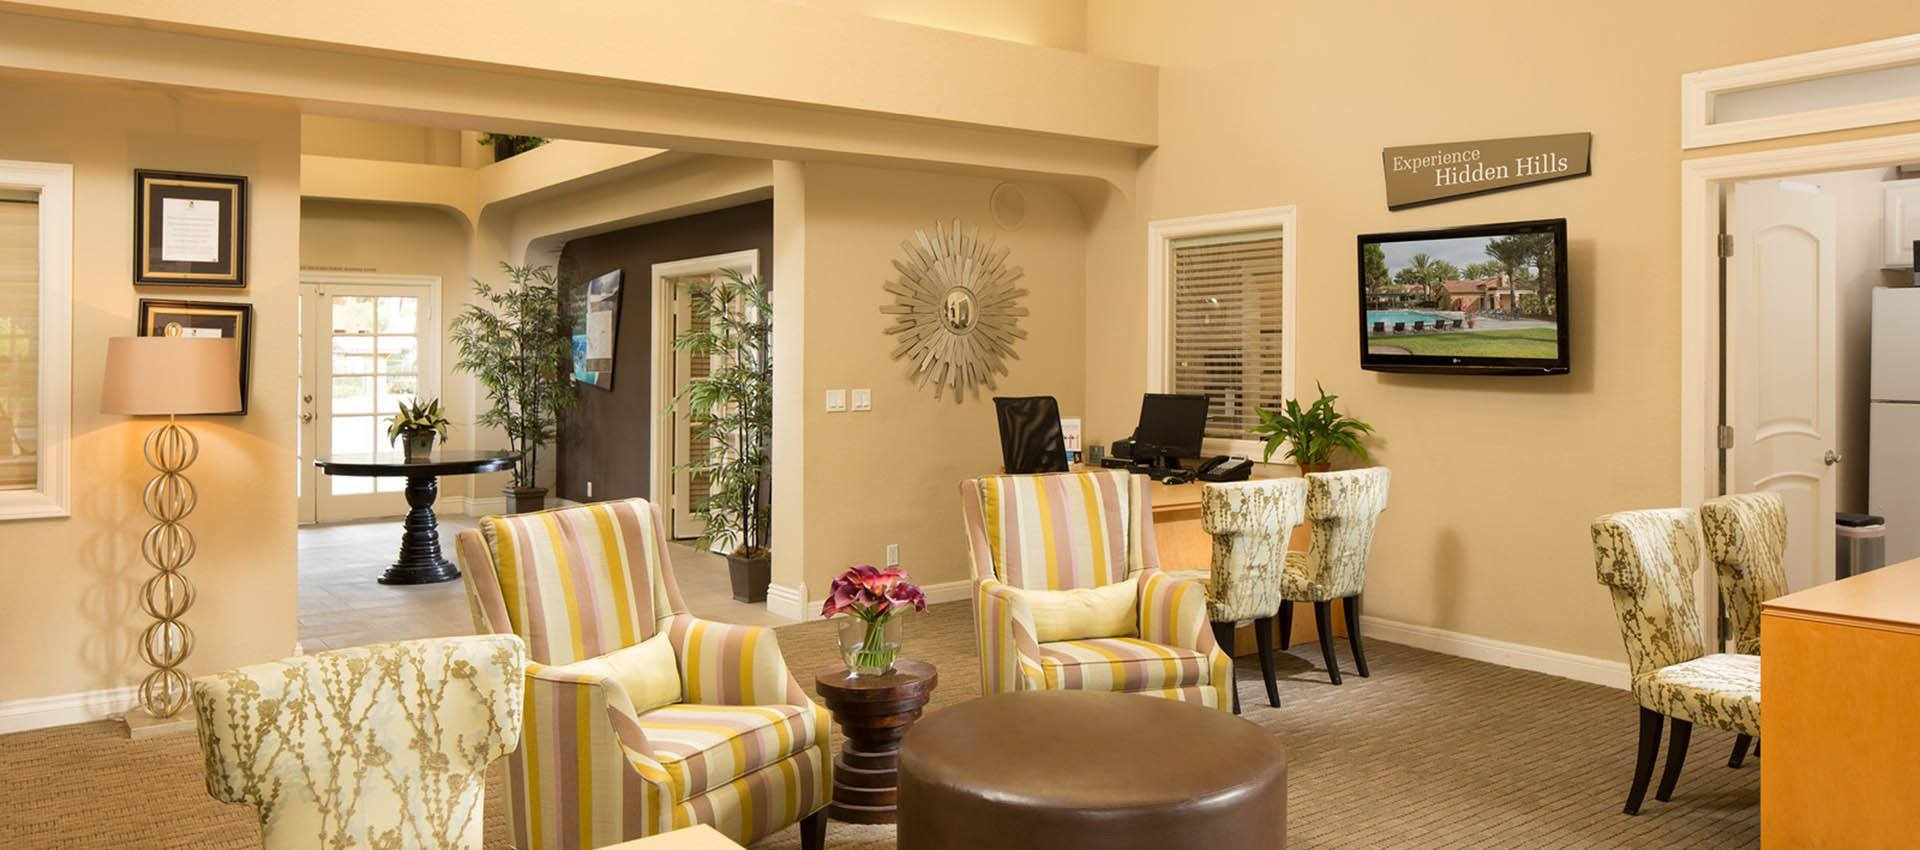 Clubhouse Seating Area at Hidden Hills Condominium Rentals in Laguna Niguel, CA